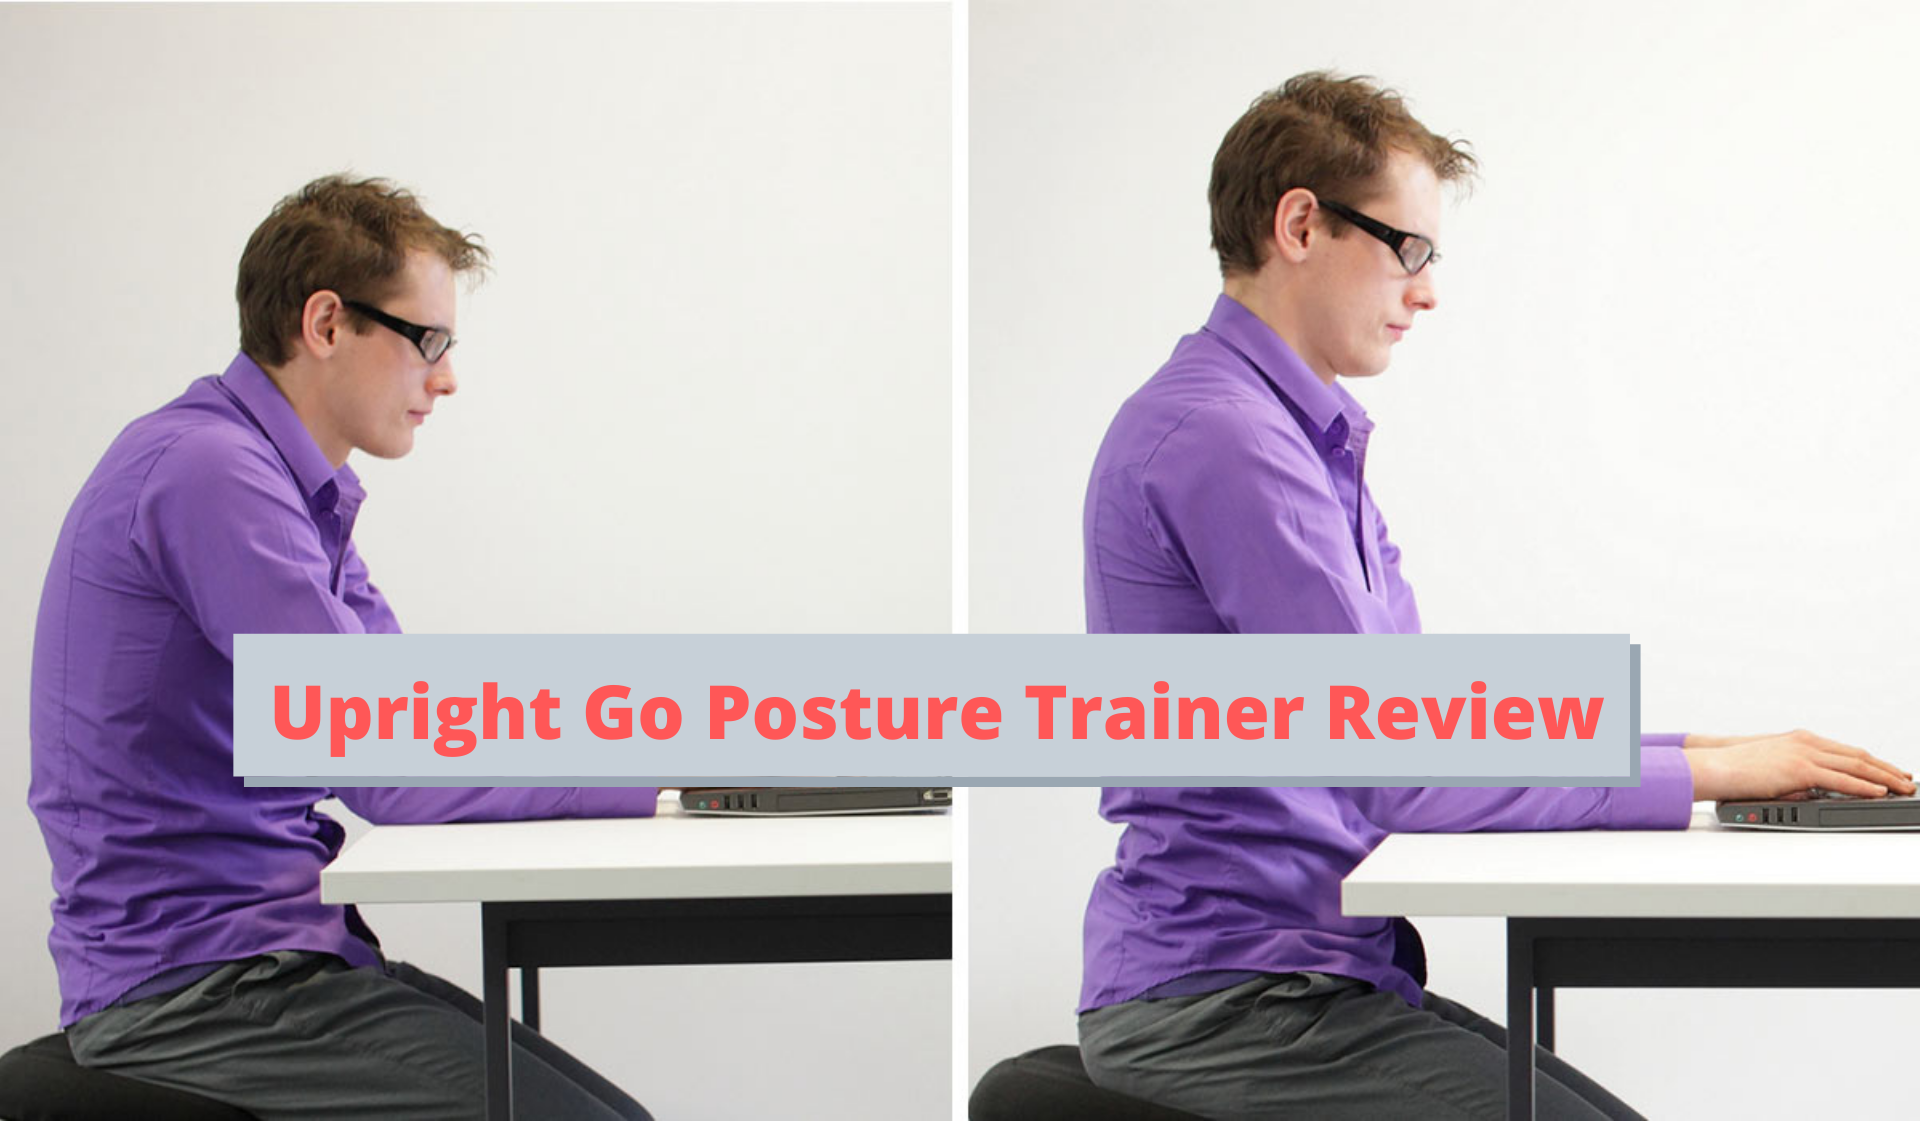 upright go posture trainer review